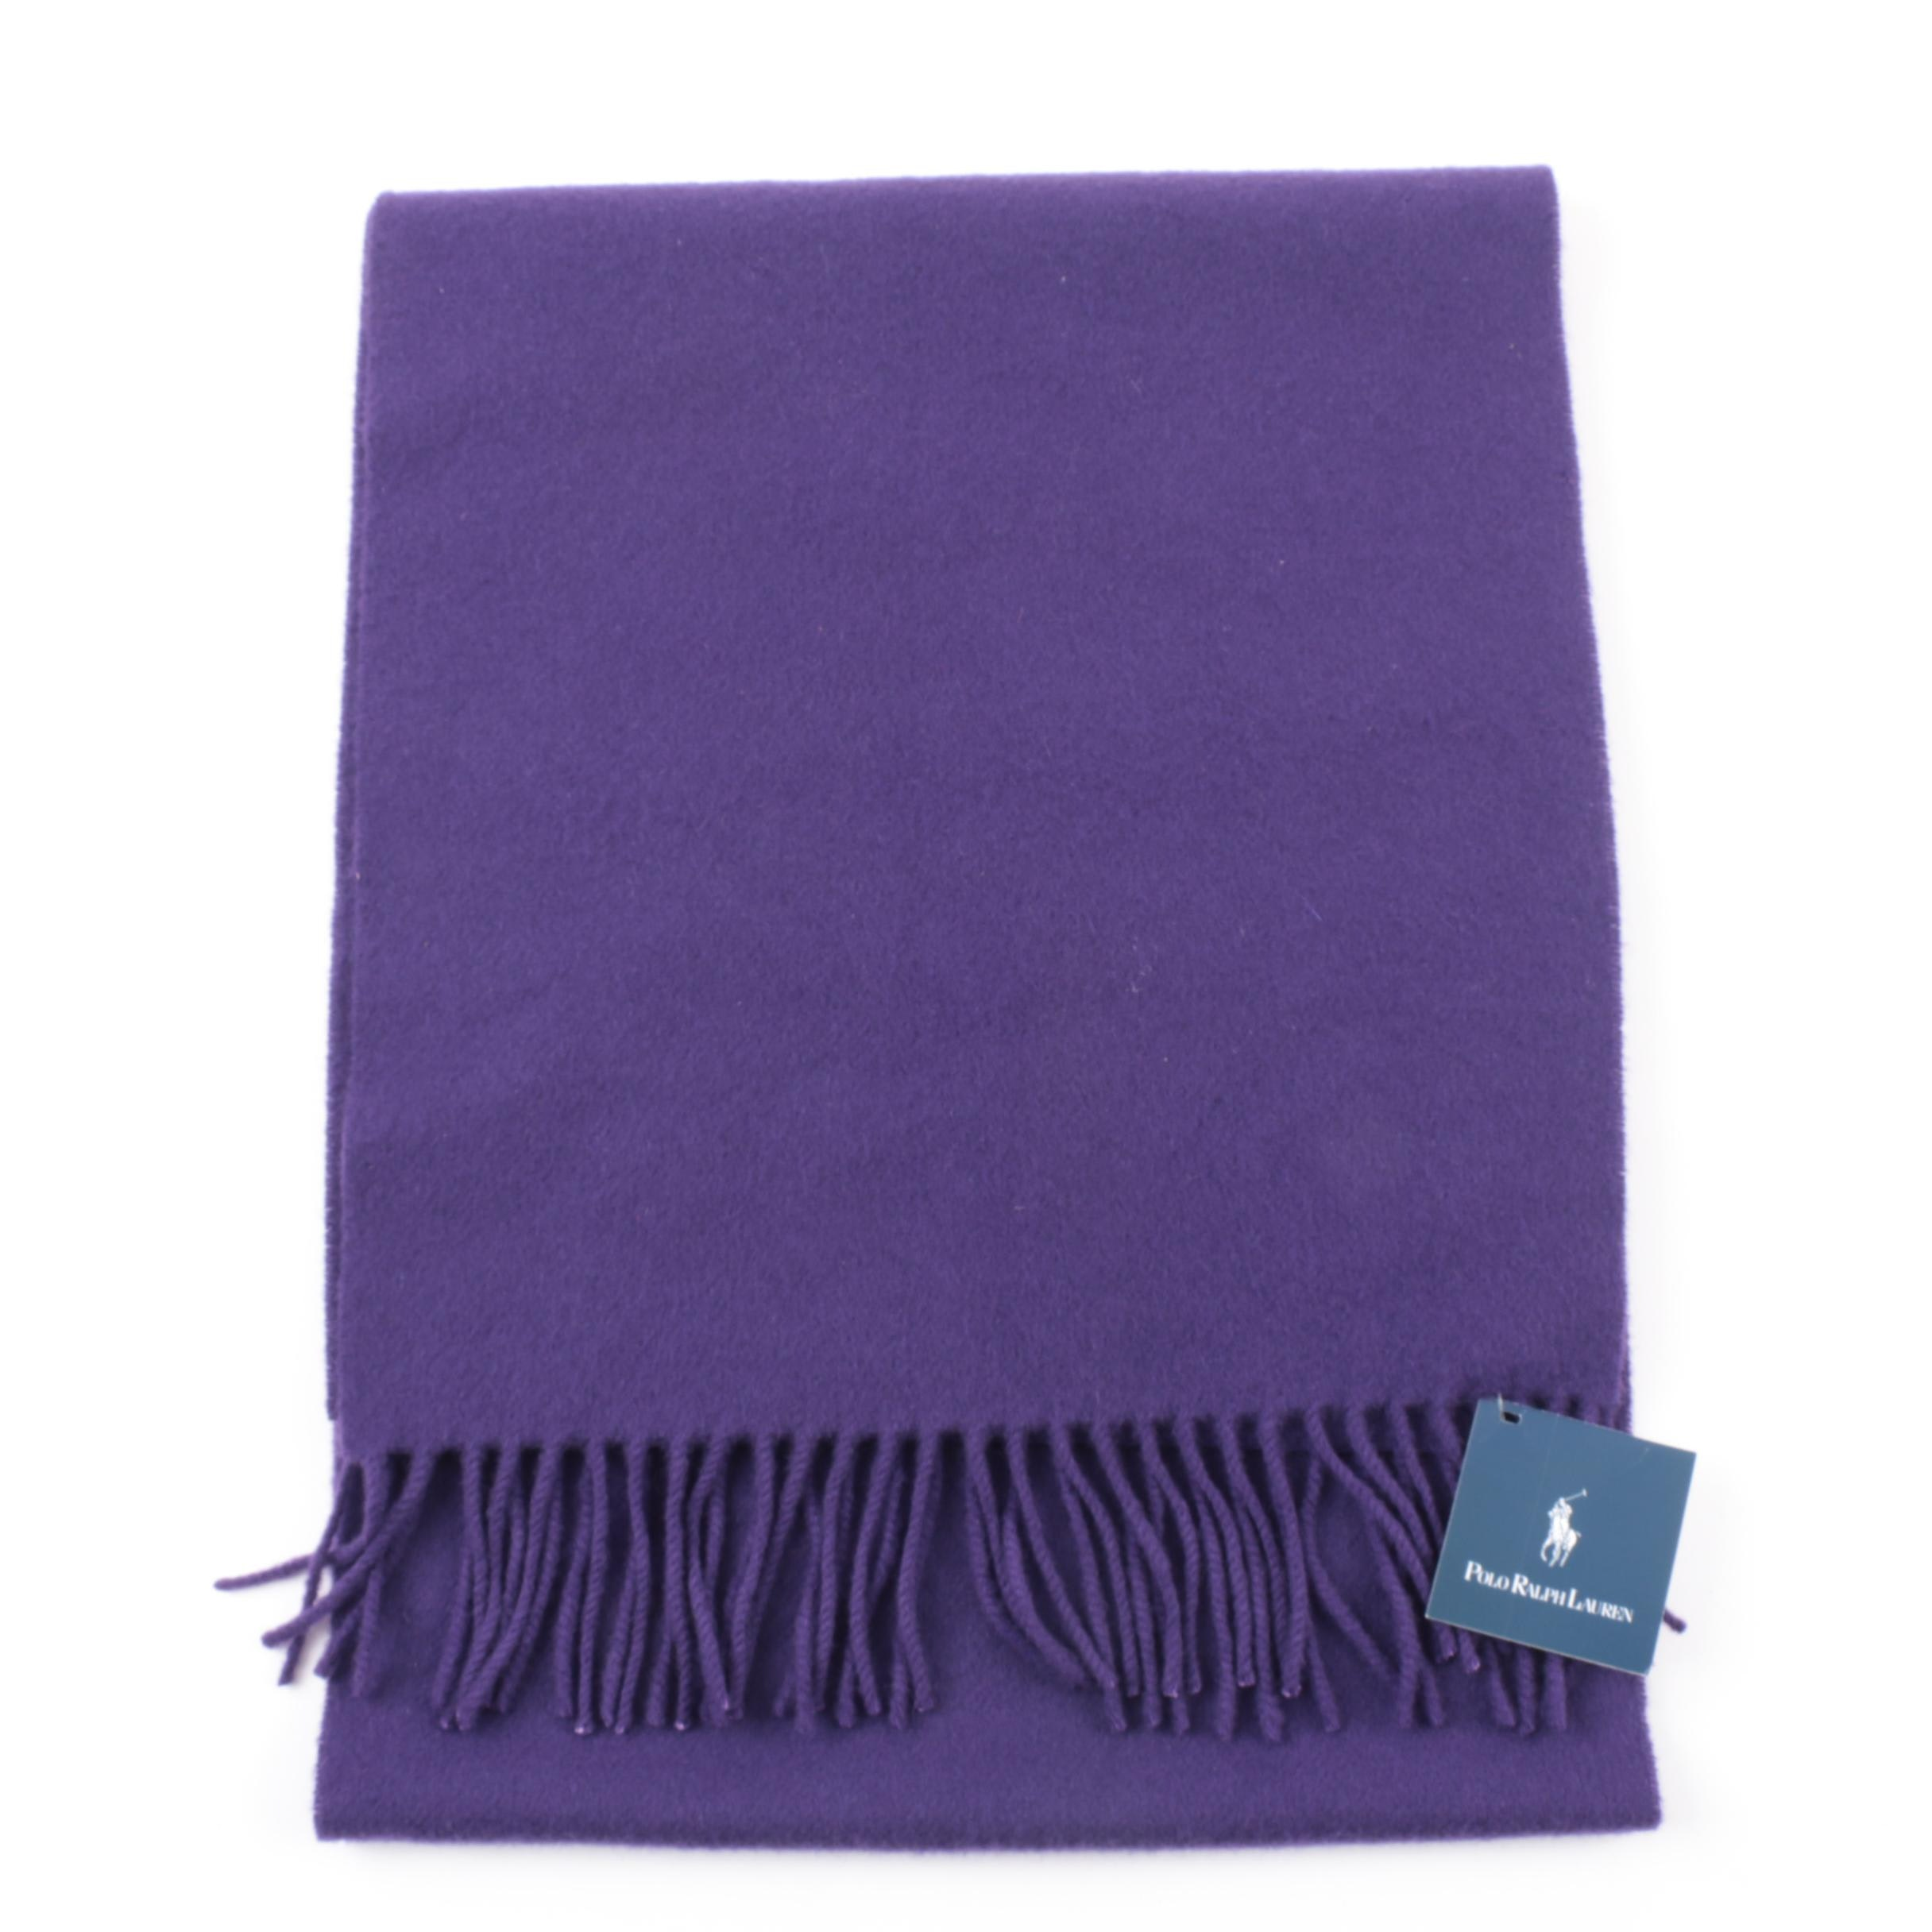 Ralph Lauren Purple Cashmere Fringed Scarf, New With Tag